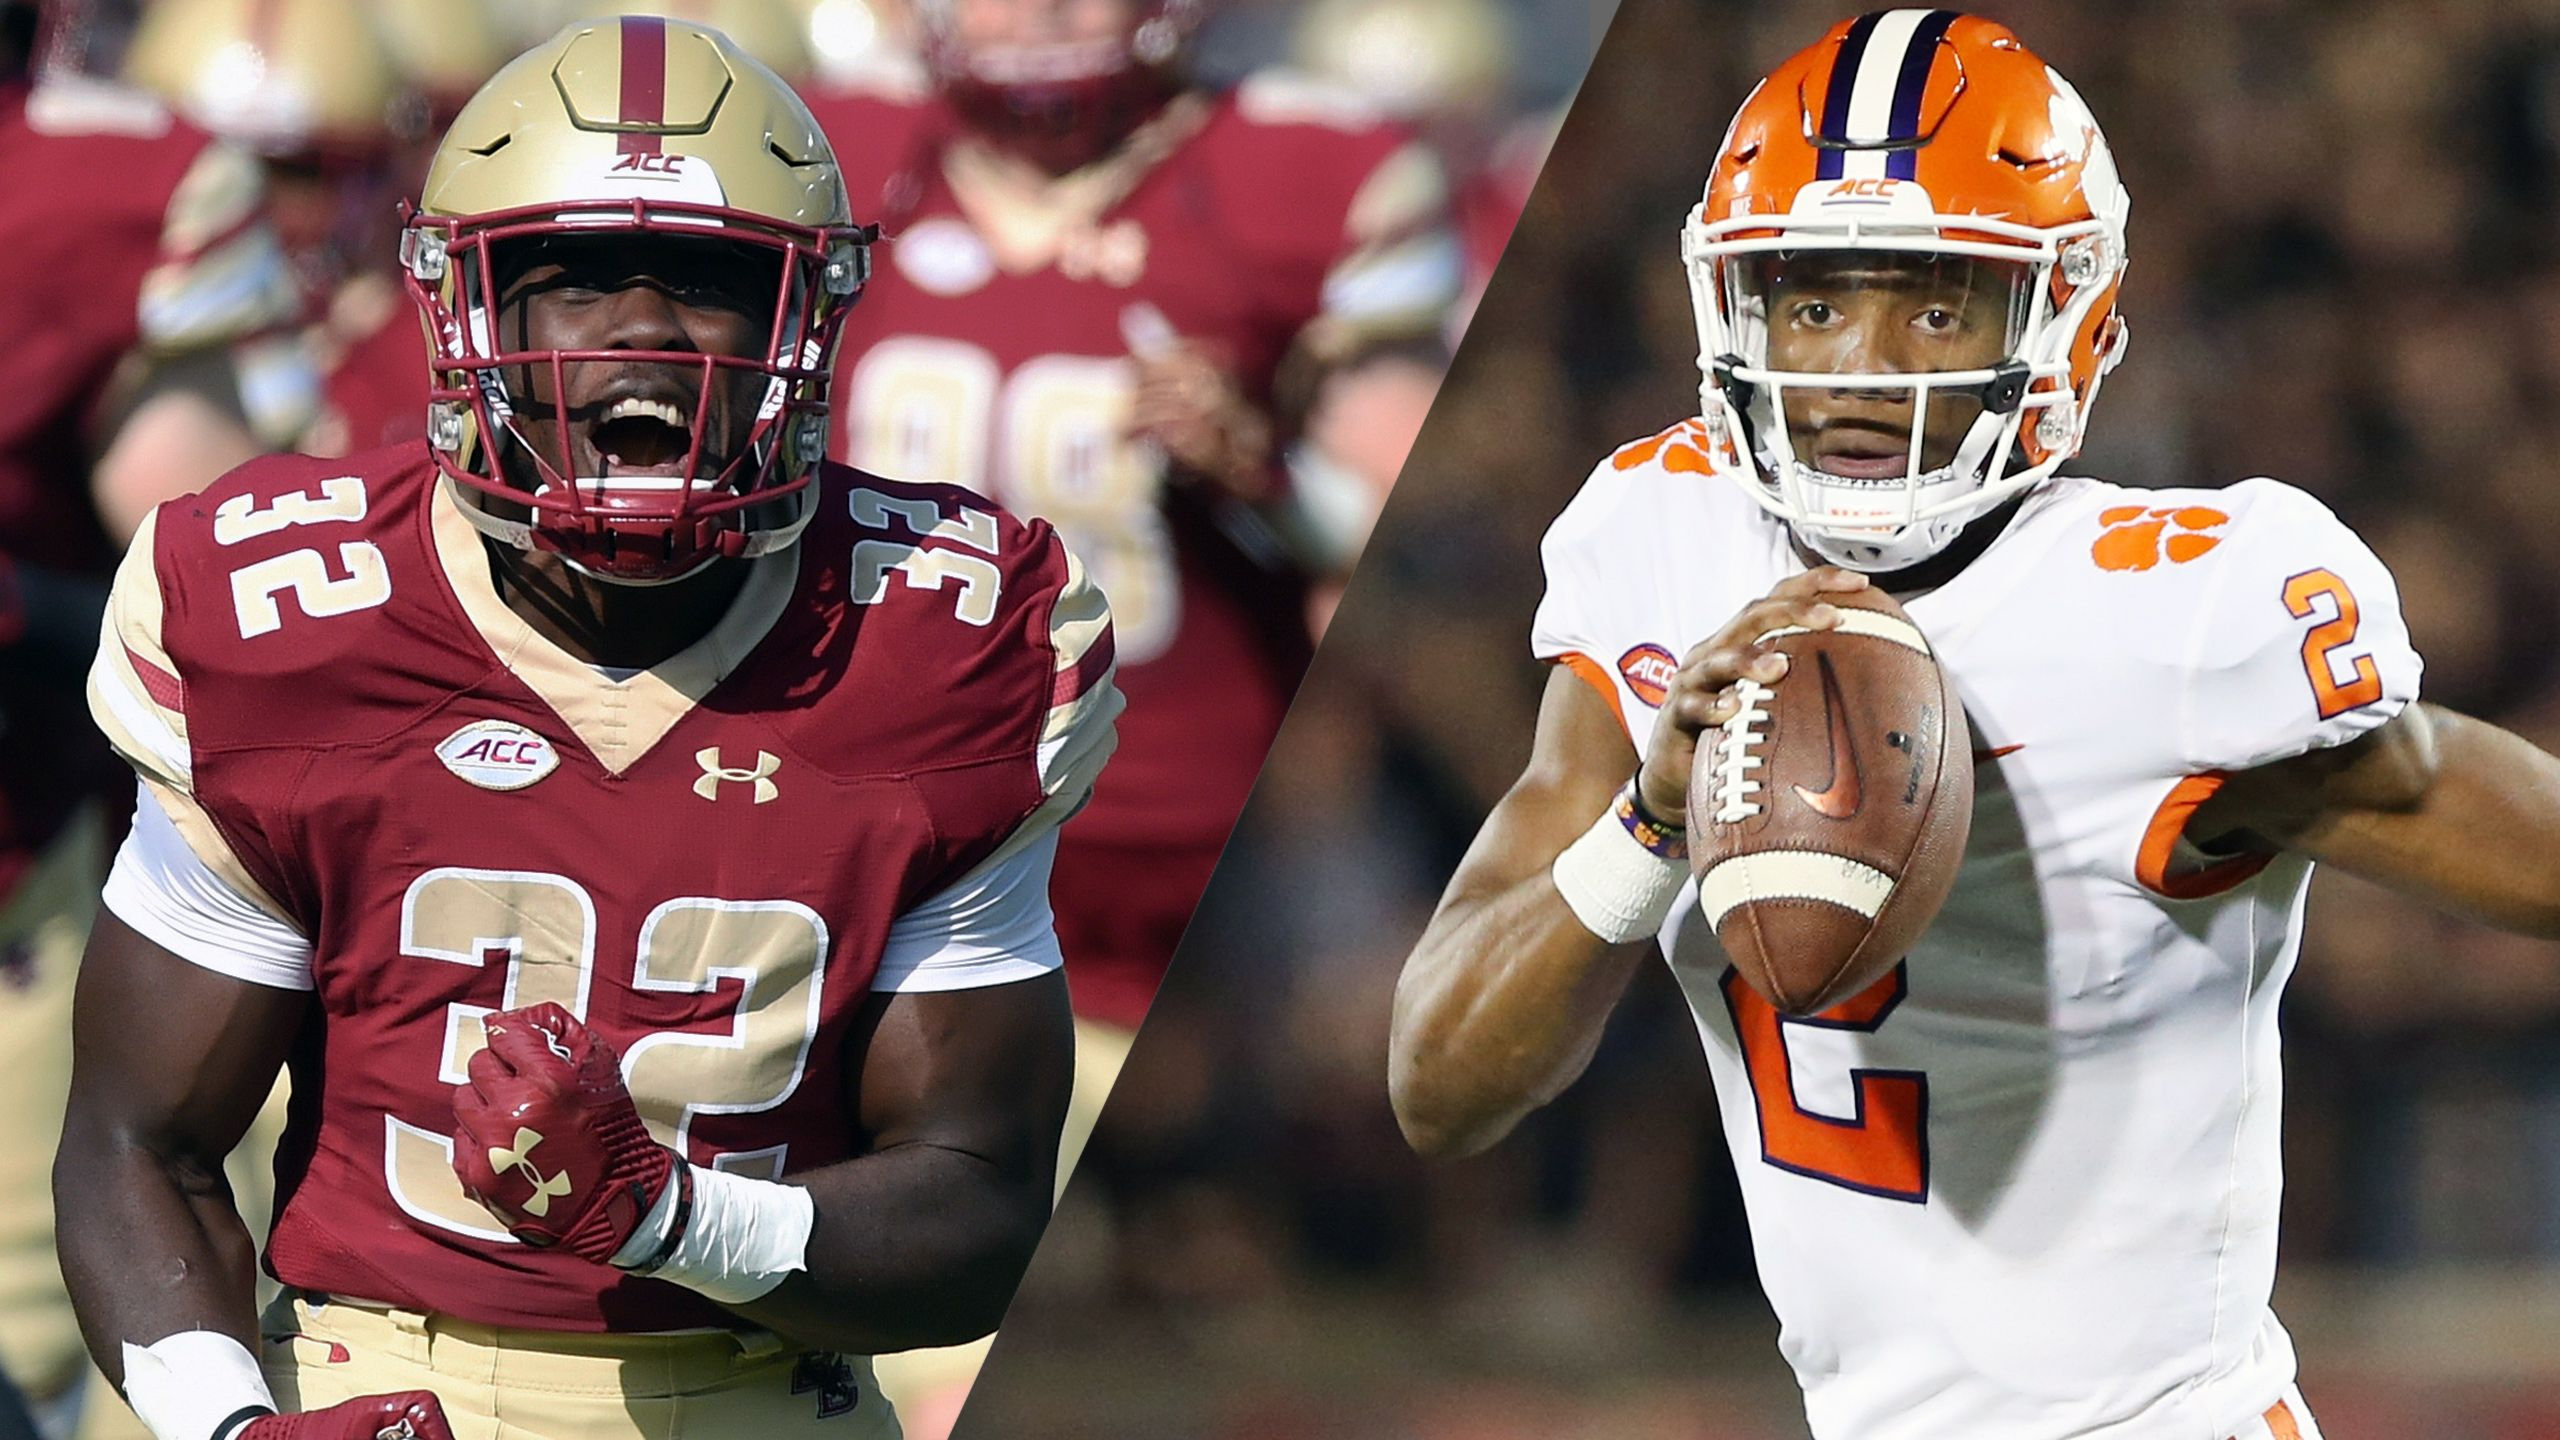 Boston College vs. #2 Clemson (Football)